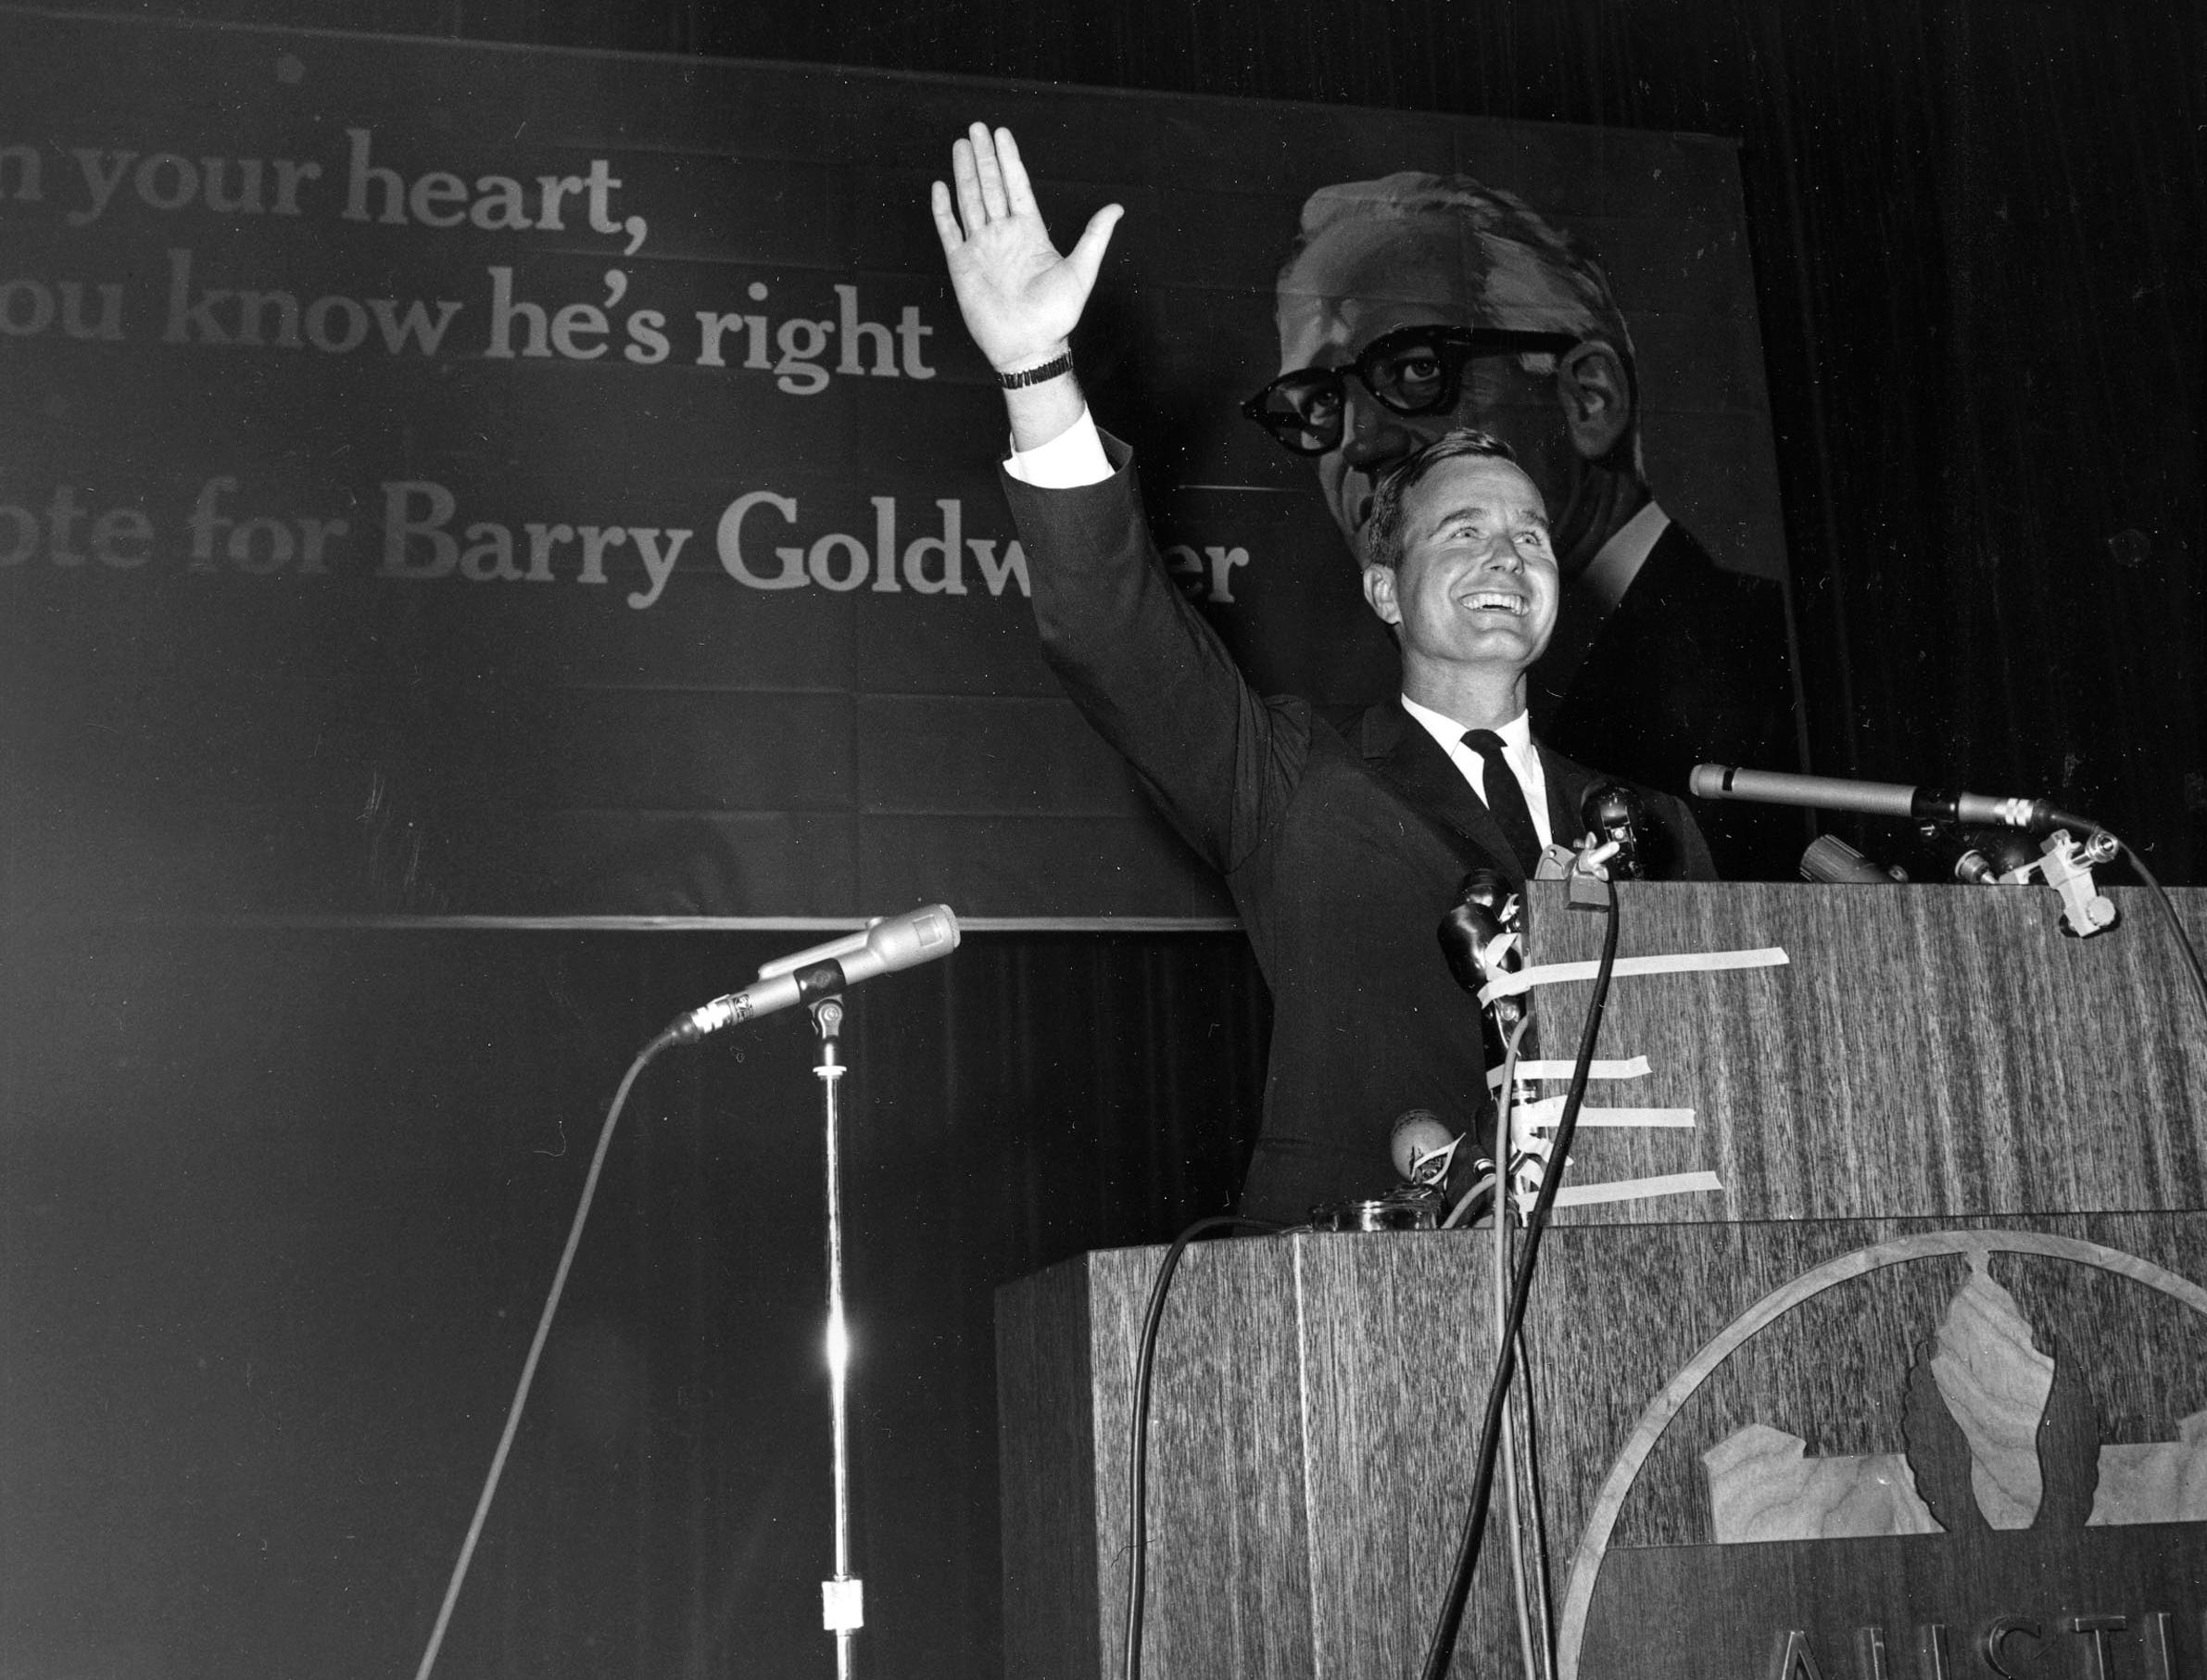 George Bush of Houston, Republican candidate for the U.S. Senate, waves to backers who cheer him after he addressed the Republican State Convention in Austin, Texas, Sept. 15, 1964.  Bush seeks the seat held by Sen. Ralph Yarborough.  (AP Photo)